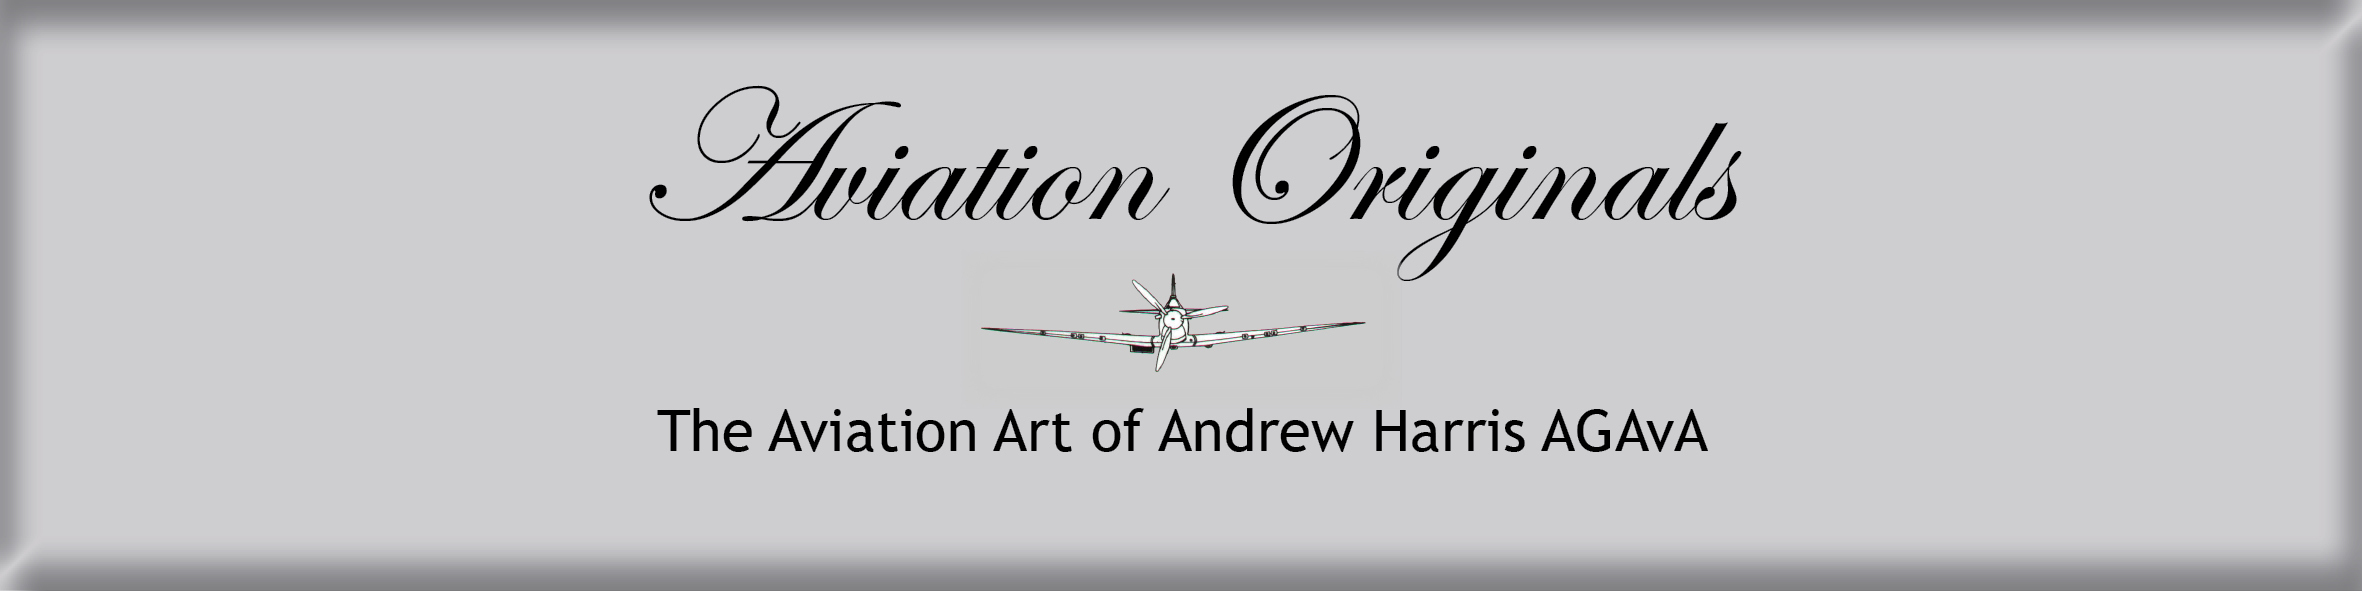 Aviation_Originals_Strapline_A